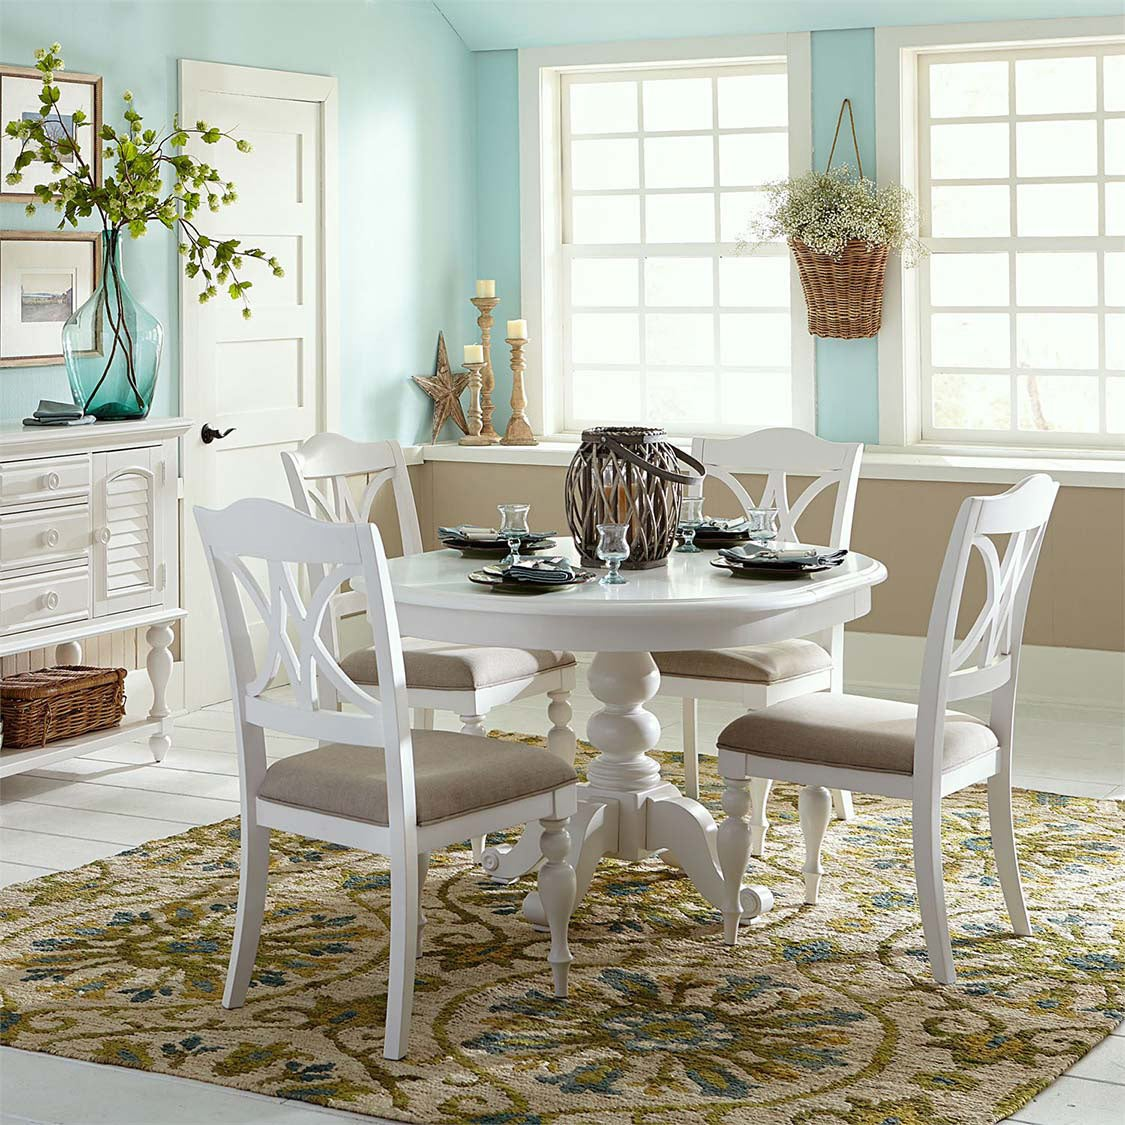 Summer House Oyster House 5 Piece Dining Set | Weekends Only Furniture & Mattress